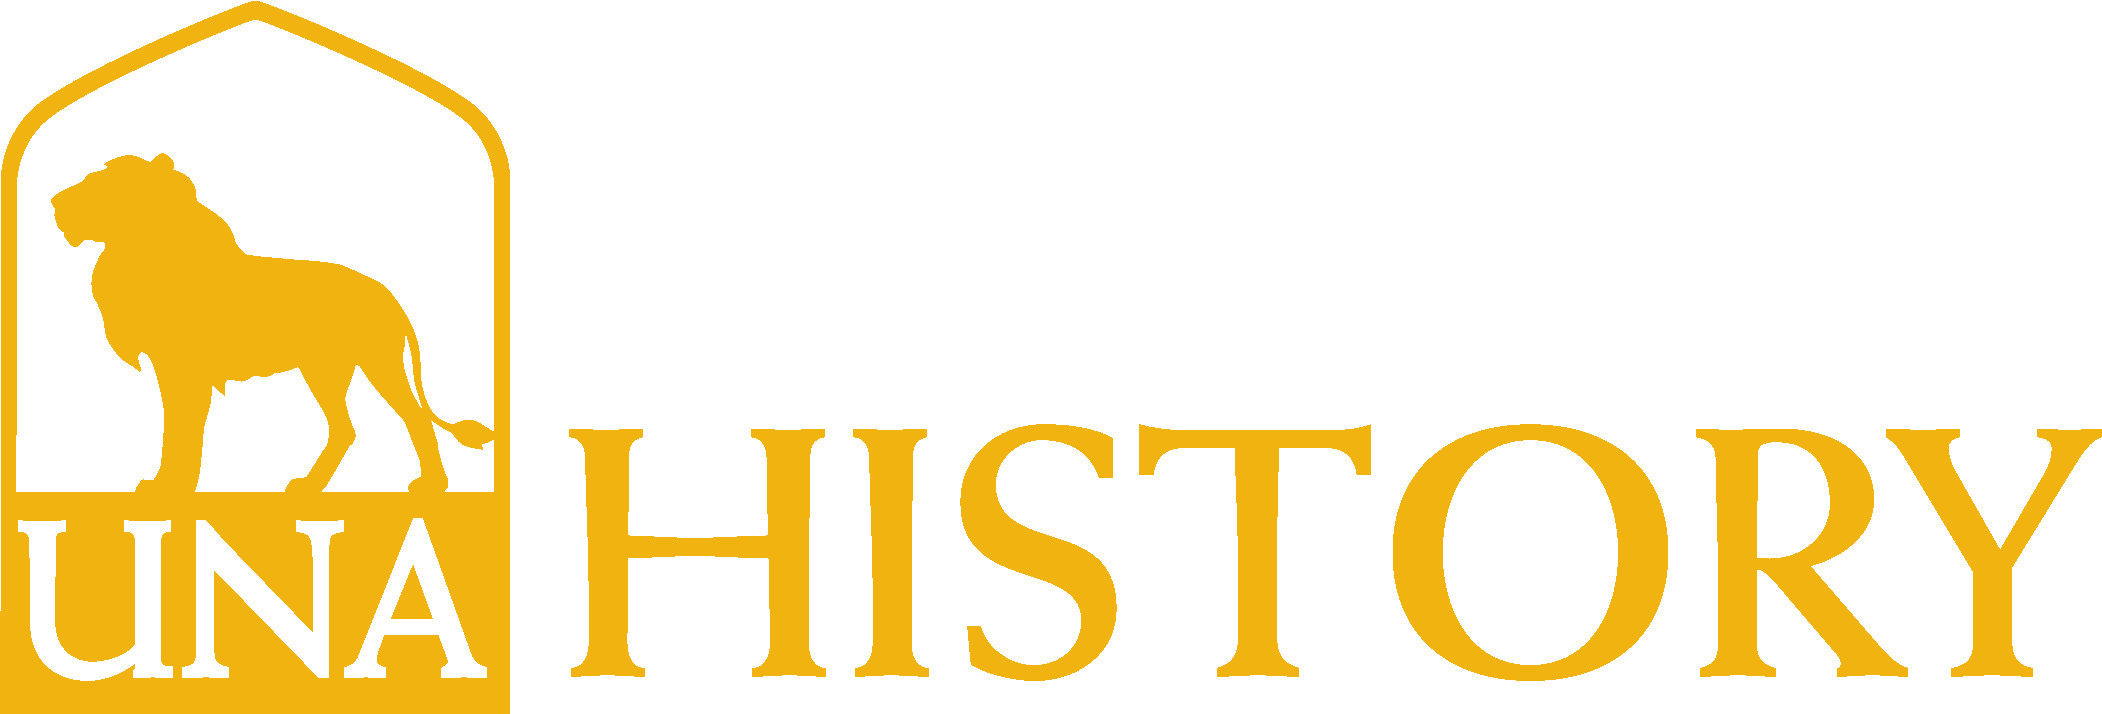 College of Arts and Sciences - History Logo - Gold - Version 3